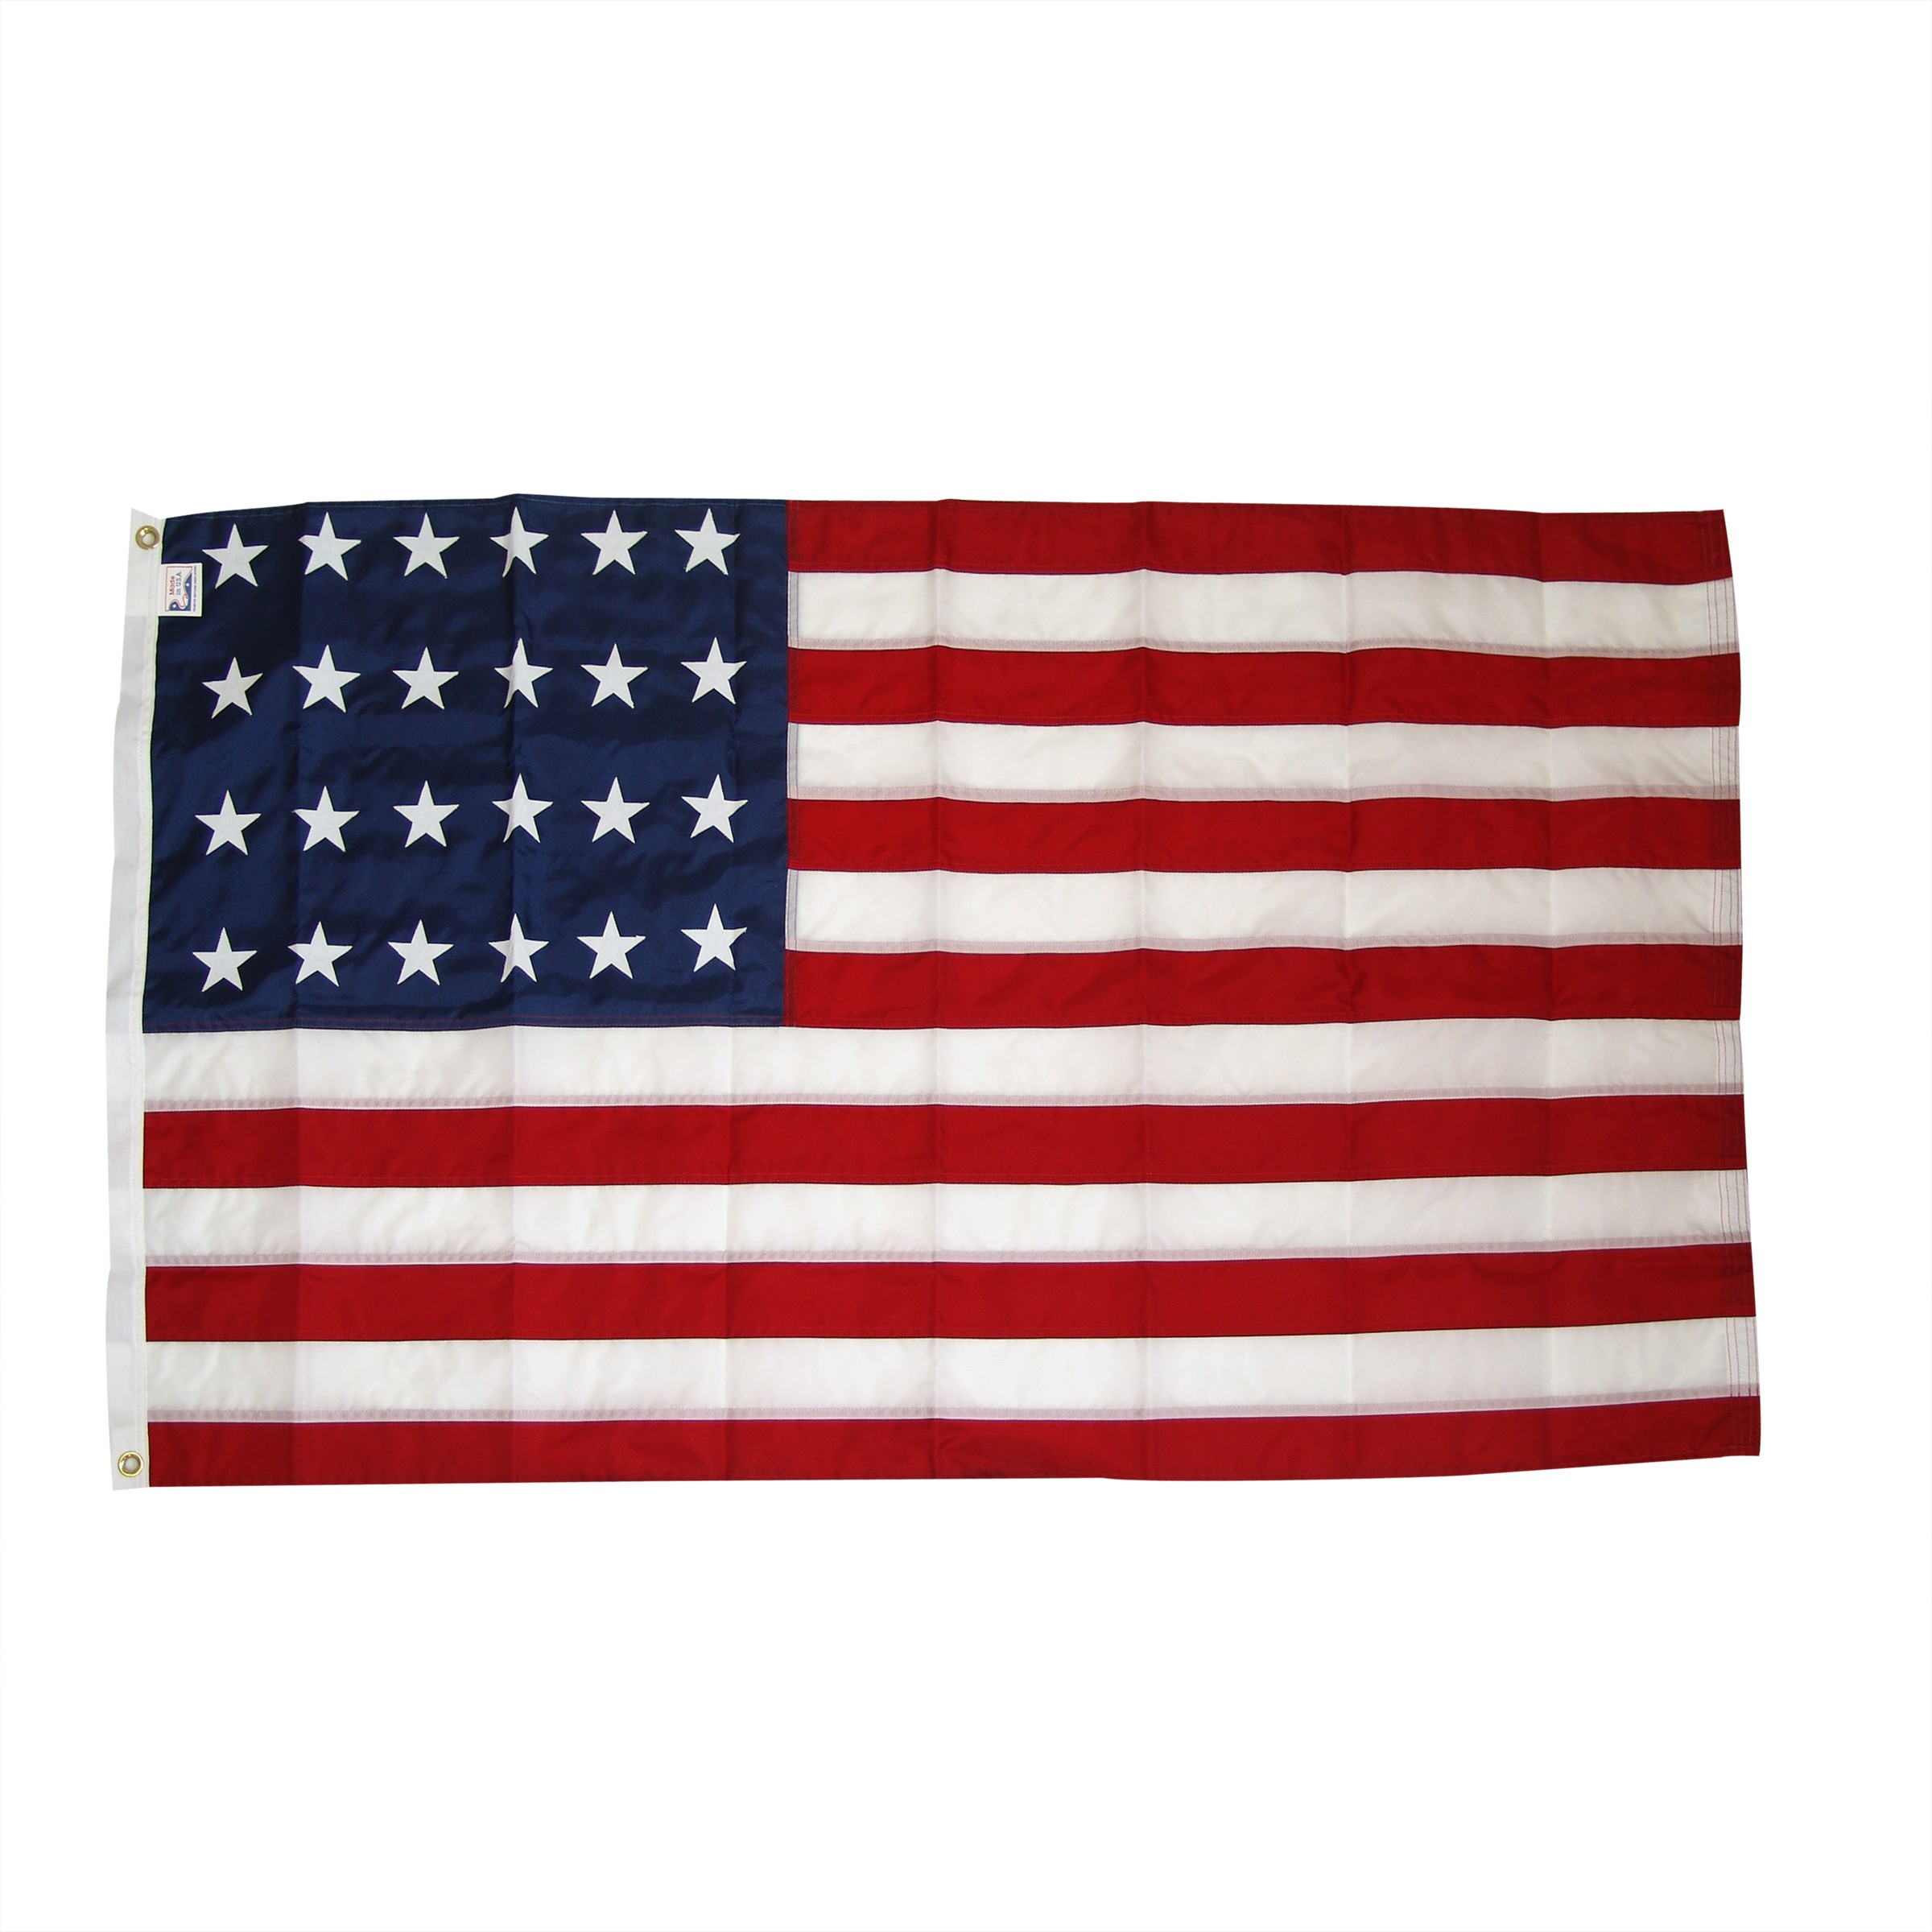 USA 24 Star 3ftx5ft Nylon flag